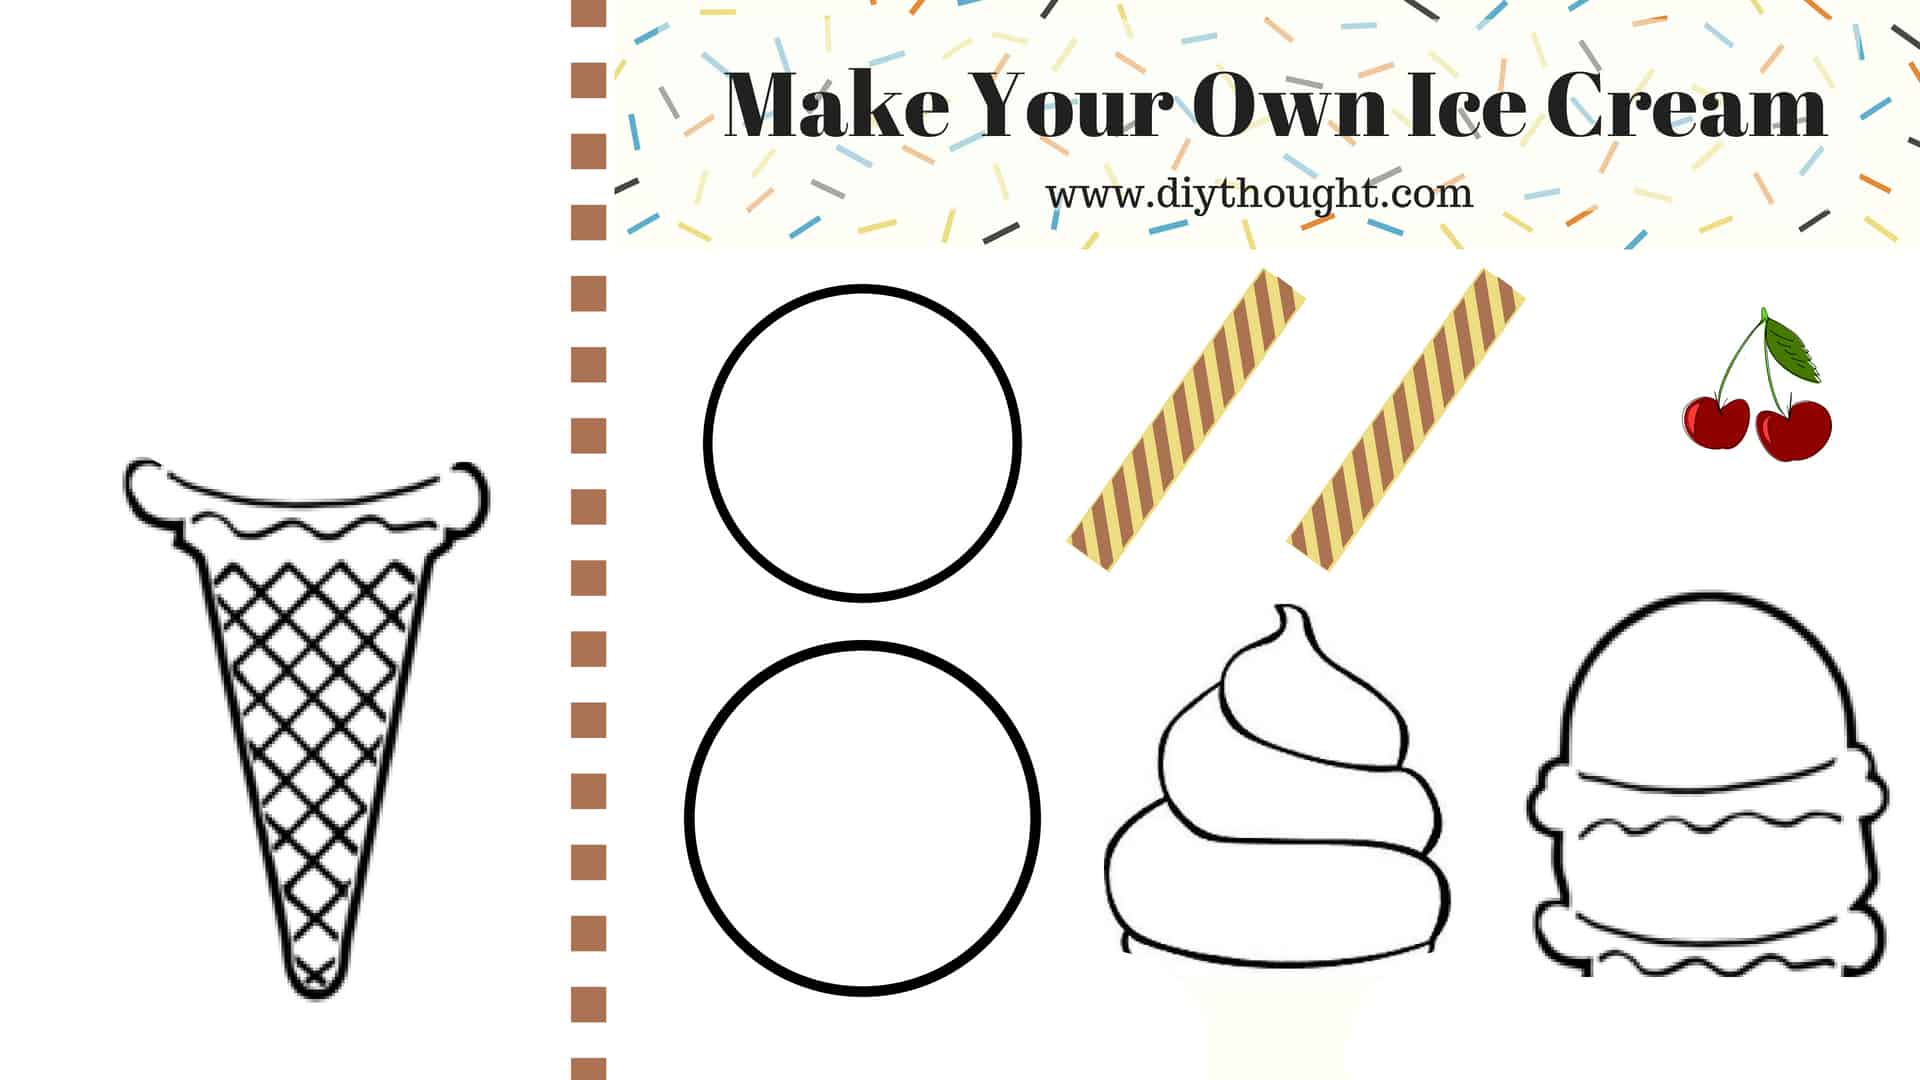 picture relating to Cool Printables titled 5 Neat Ice Product Printables - do-it-yourself Idea